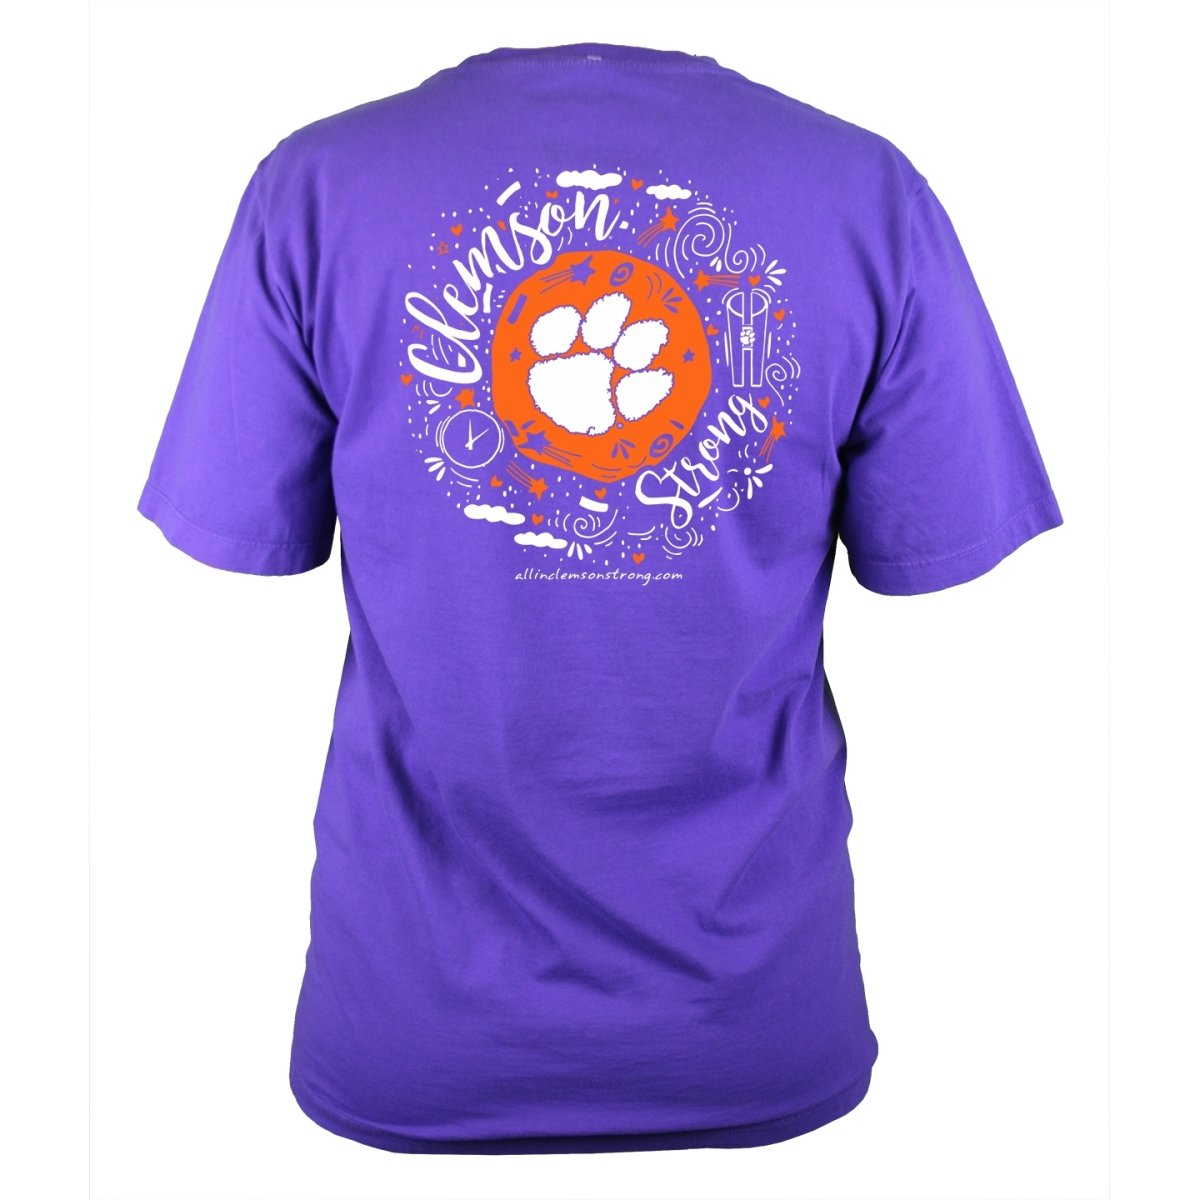 Ladies Clemson Strong T-shirt - Mr. Knickerbocker